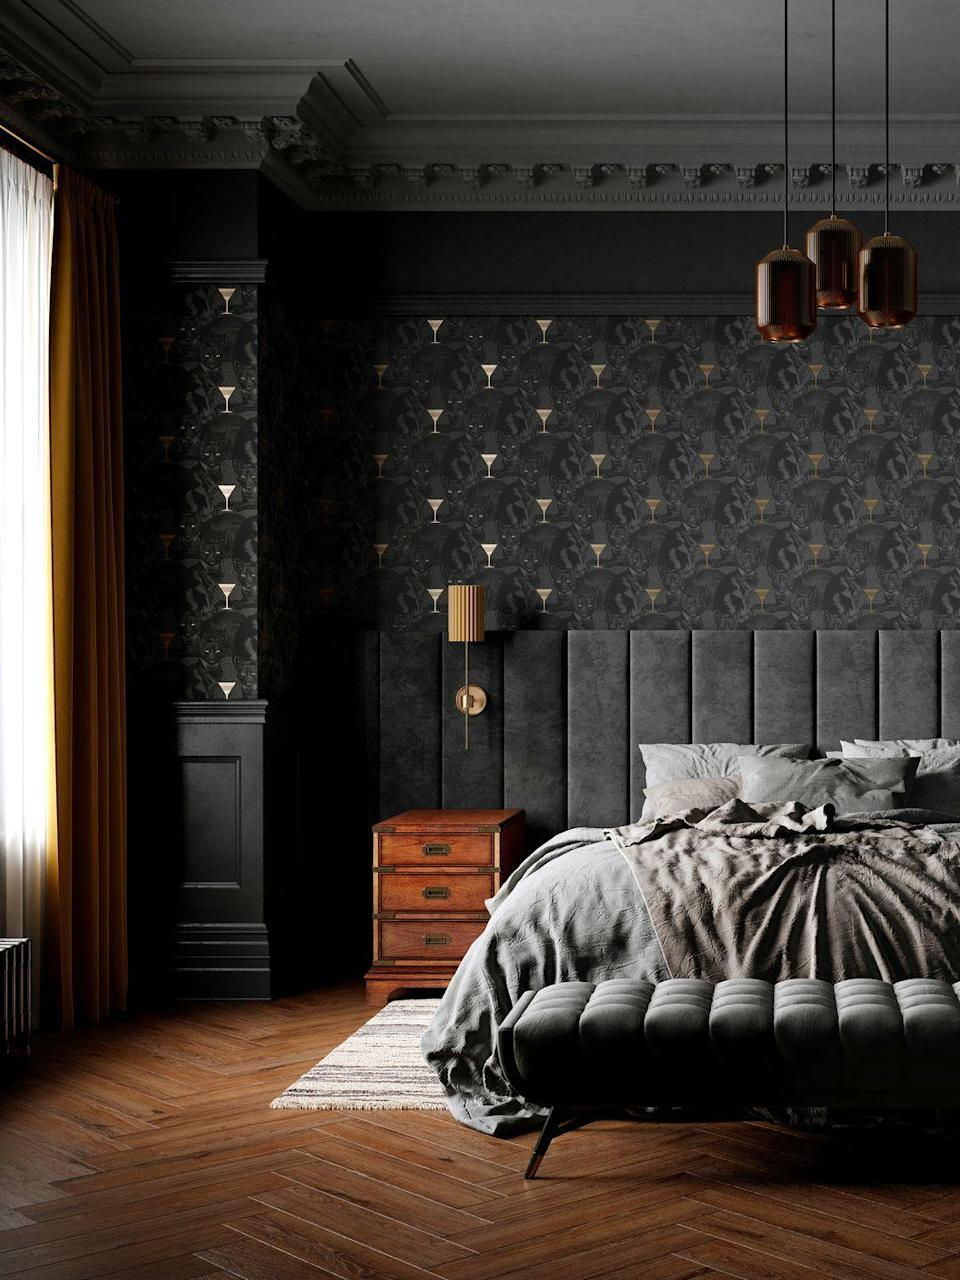 """<p>Looking for a luxe grey bedroom idea? Keep it dark and moody with patterned wallpaper, sumptuous velvets, and metallic accents. The wood flooring brings warmth to this bedroom scheme.</p><p>Pictured: <a href=""""https://divinesavages.com/collections/cat-titude/products/cat-titude-savage-shade"""" rel=""""nofollow noopener"""" target=""""_blank"""" data-ylk=""""slk:Cat-titude 'Savage Shade' wallpaper, Divine Savages"""" class=""""link rapid-noclick-resp"""">Cat-titude 'Savage Shade' wallpaper, Divine Savages</a></p>"""